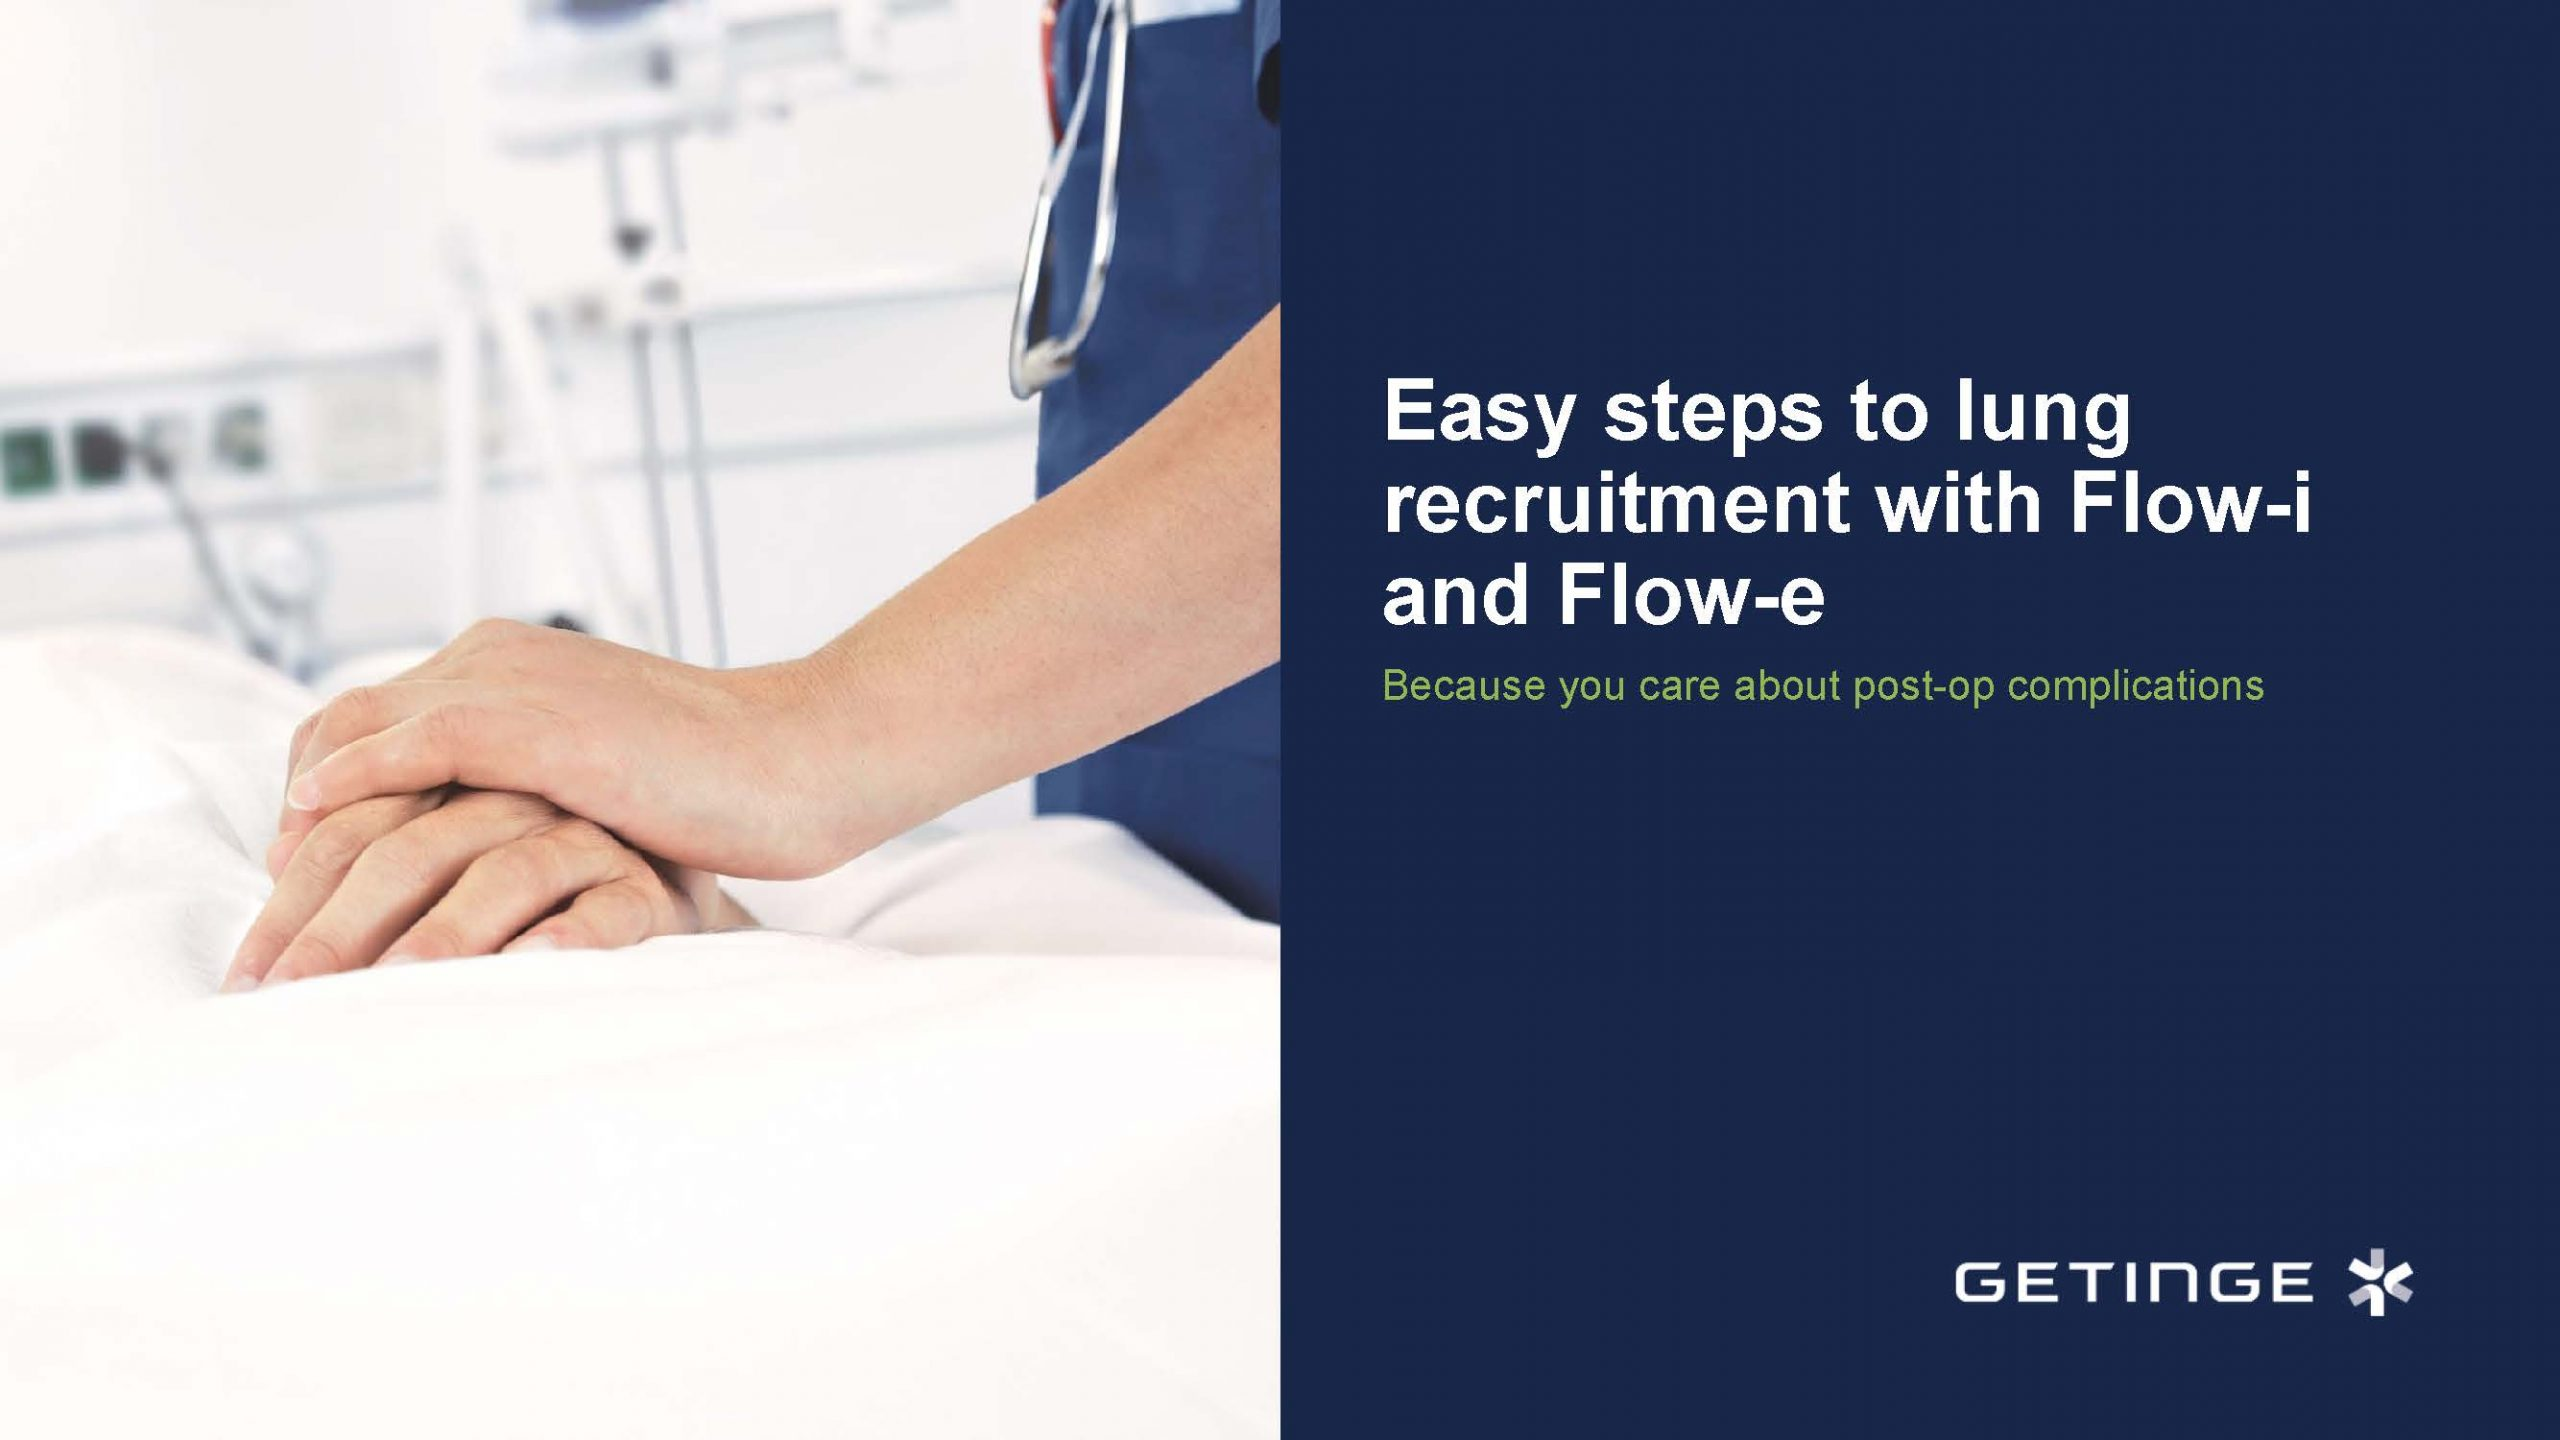 Easy Steps to Lung Recruitment with Flow-i and Flow-e